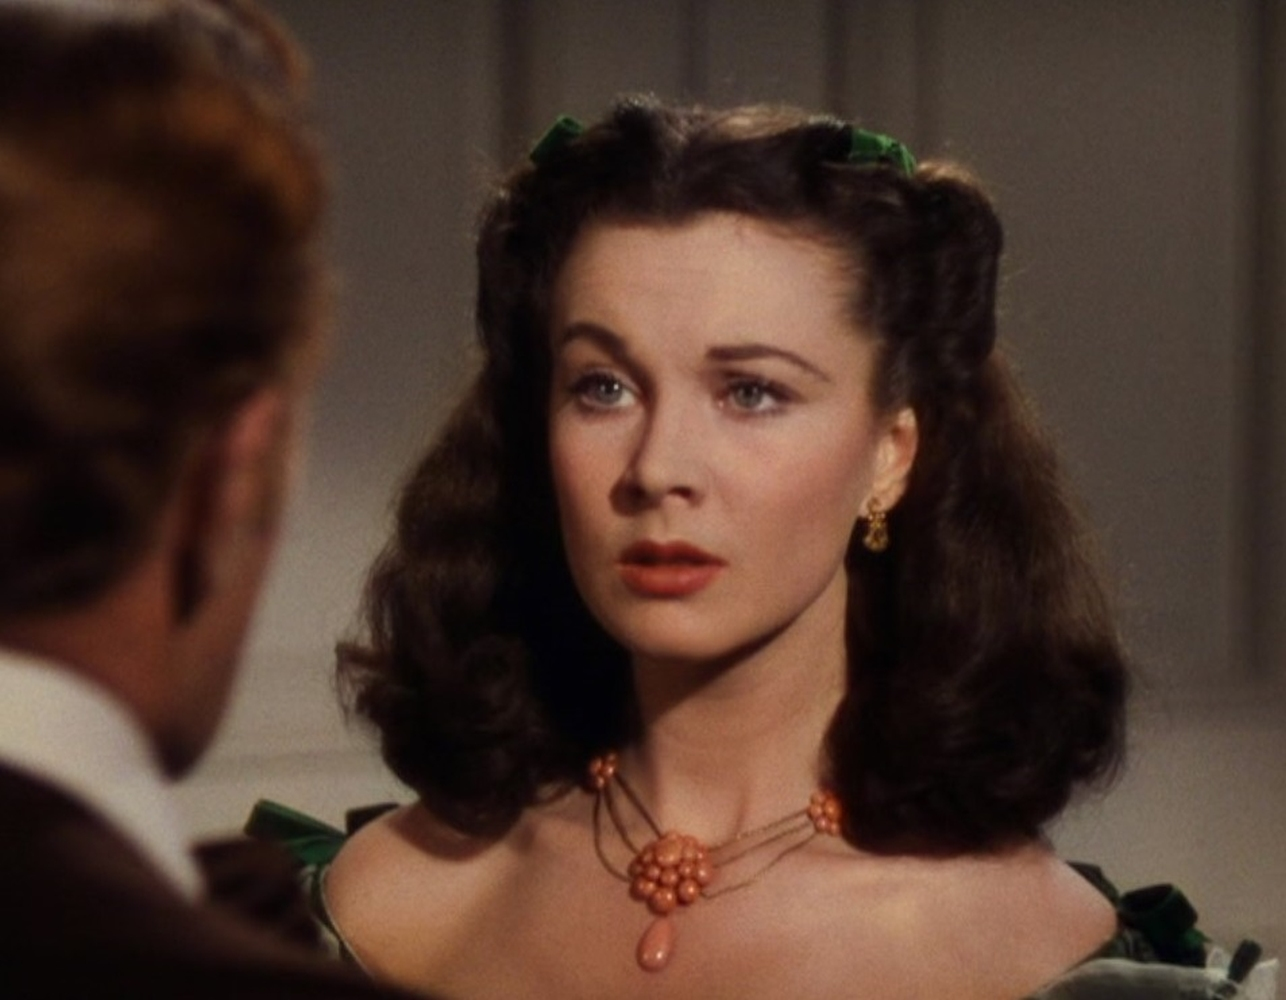 A Vivien Leigh coral necklace worn at the Twelve Oaks barbeque in Gone With the Wind - Image 2 of 5